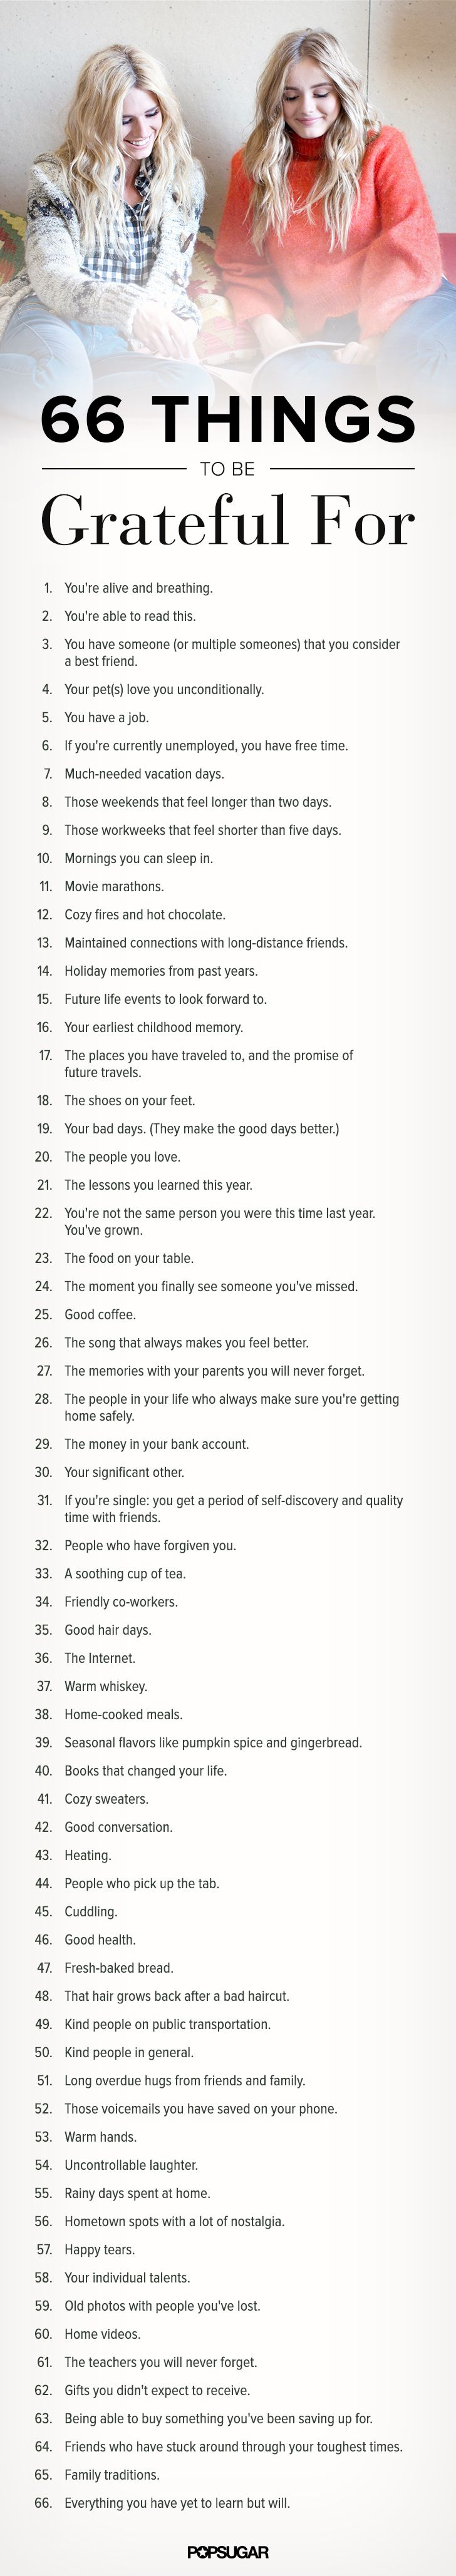 66 things to feel grateful for in your everyday life.